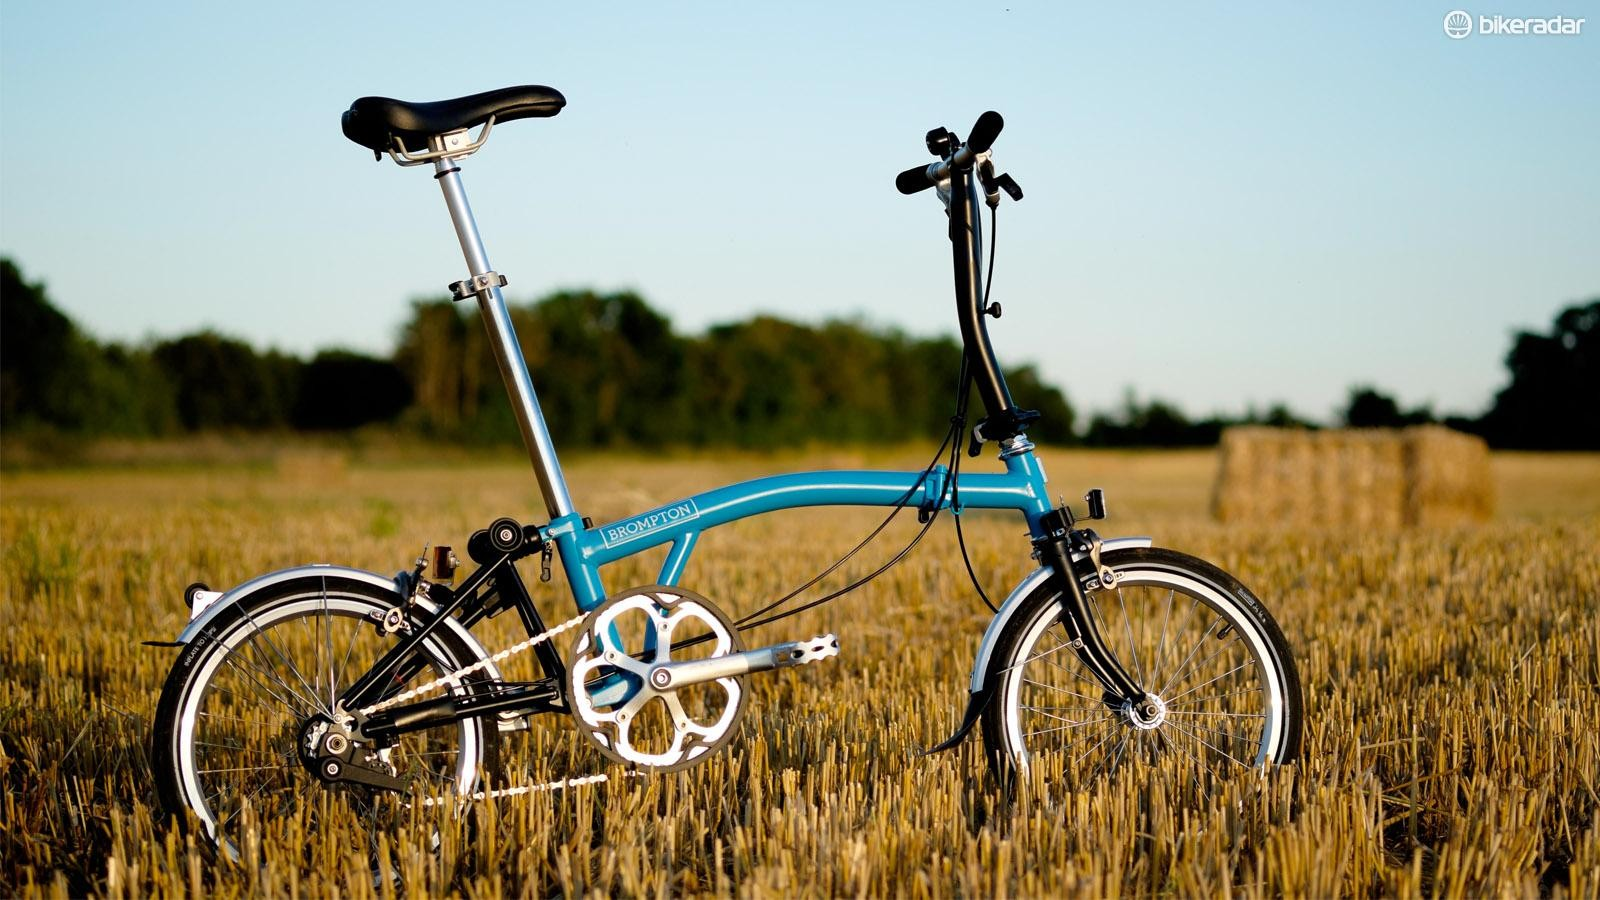 Brompton is recalling all bikes that were made between April 2014 and May 2017 because of a faulty bottom bracket